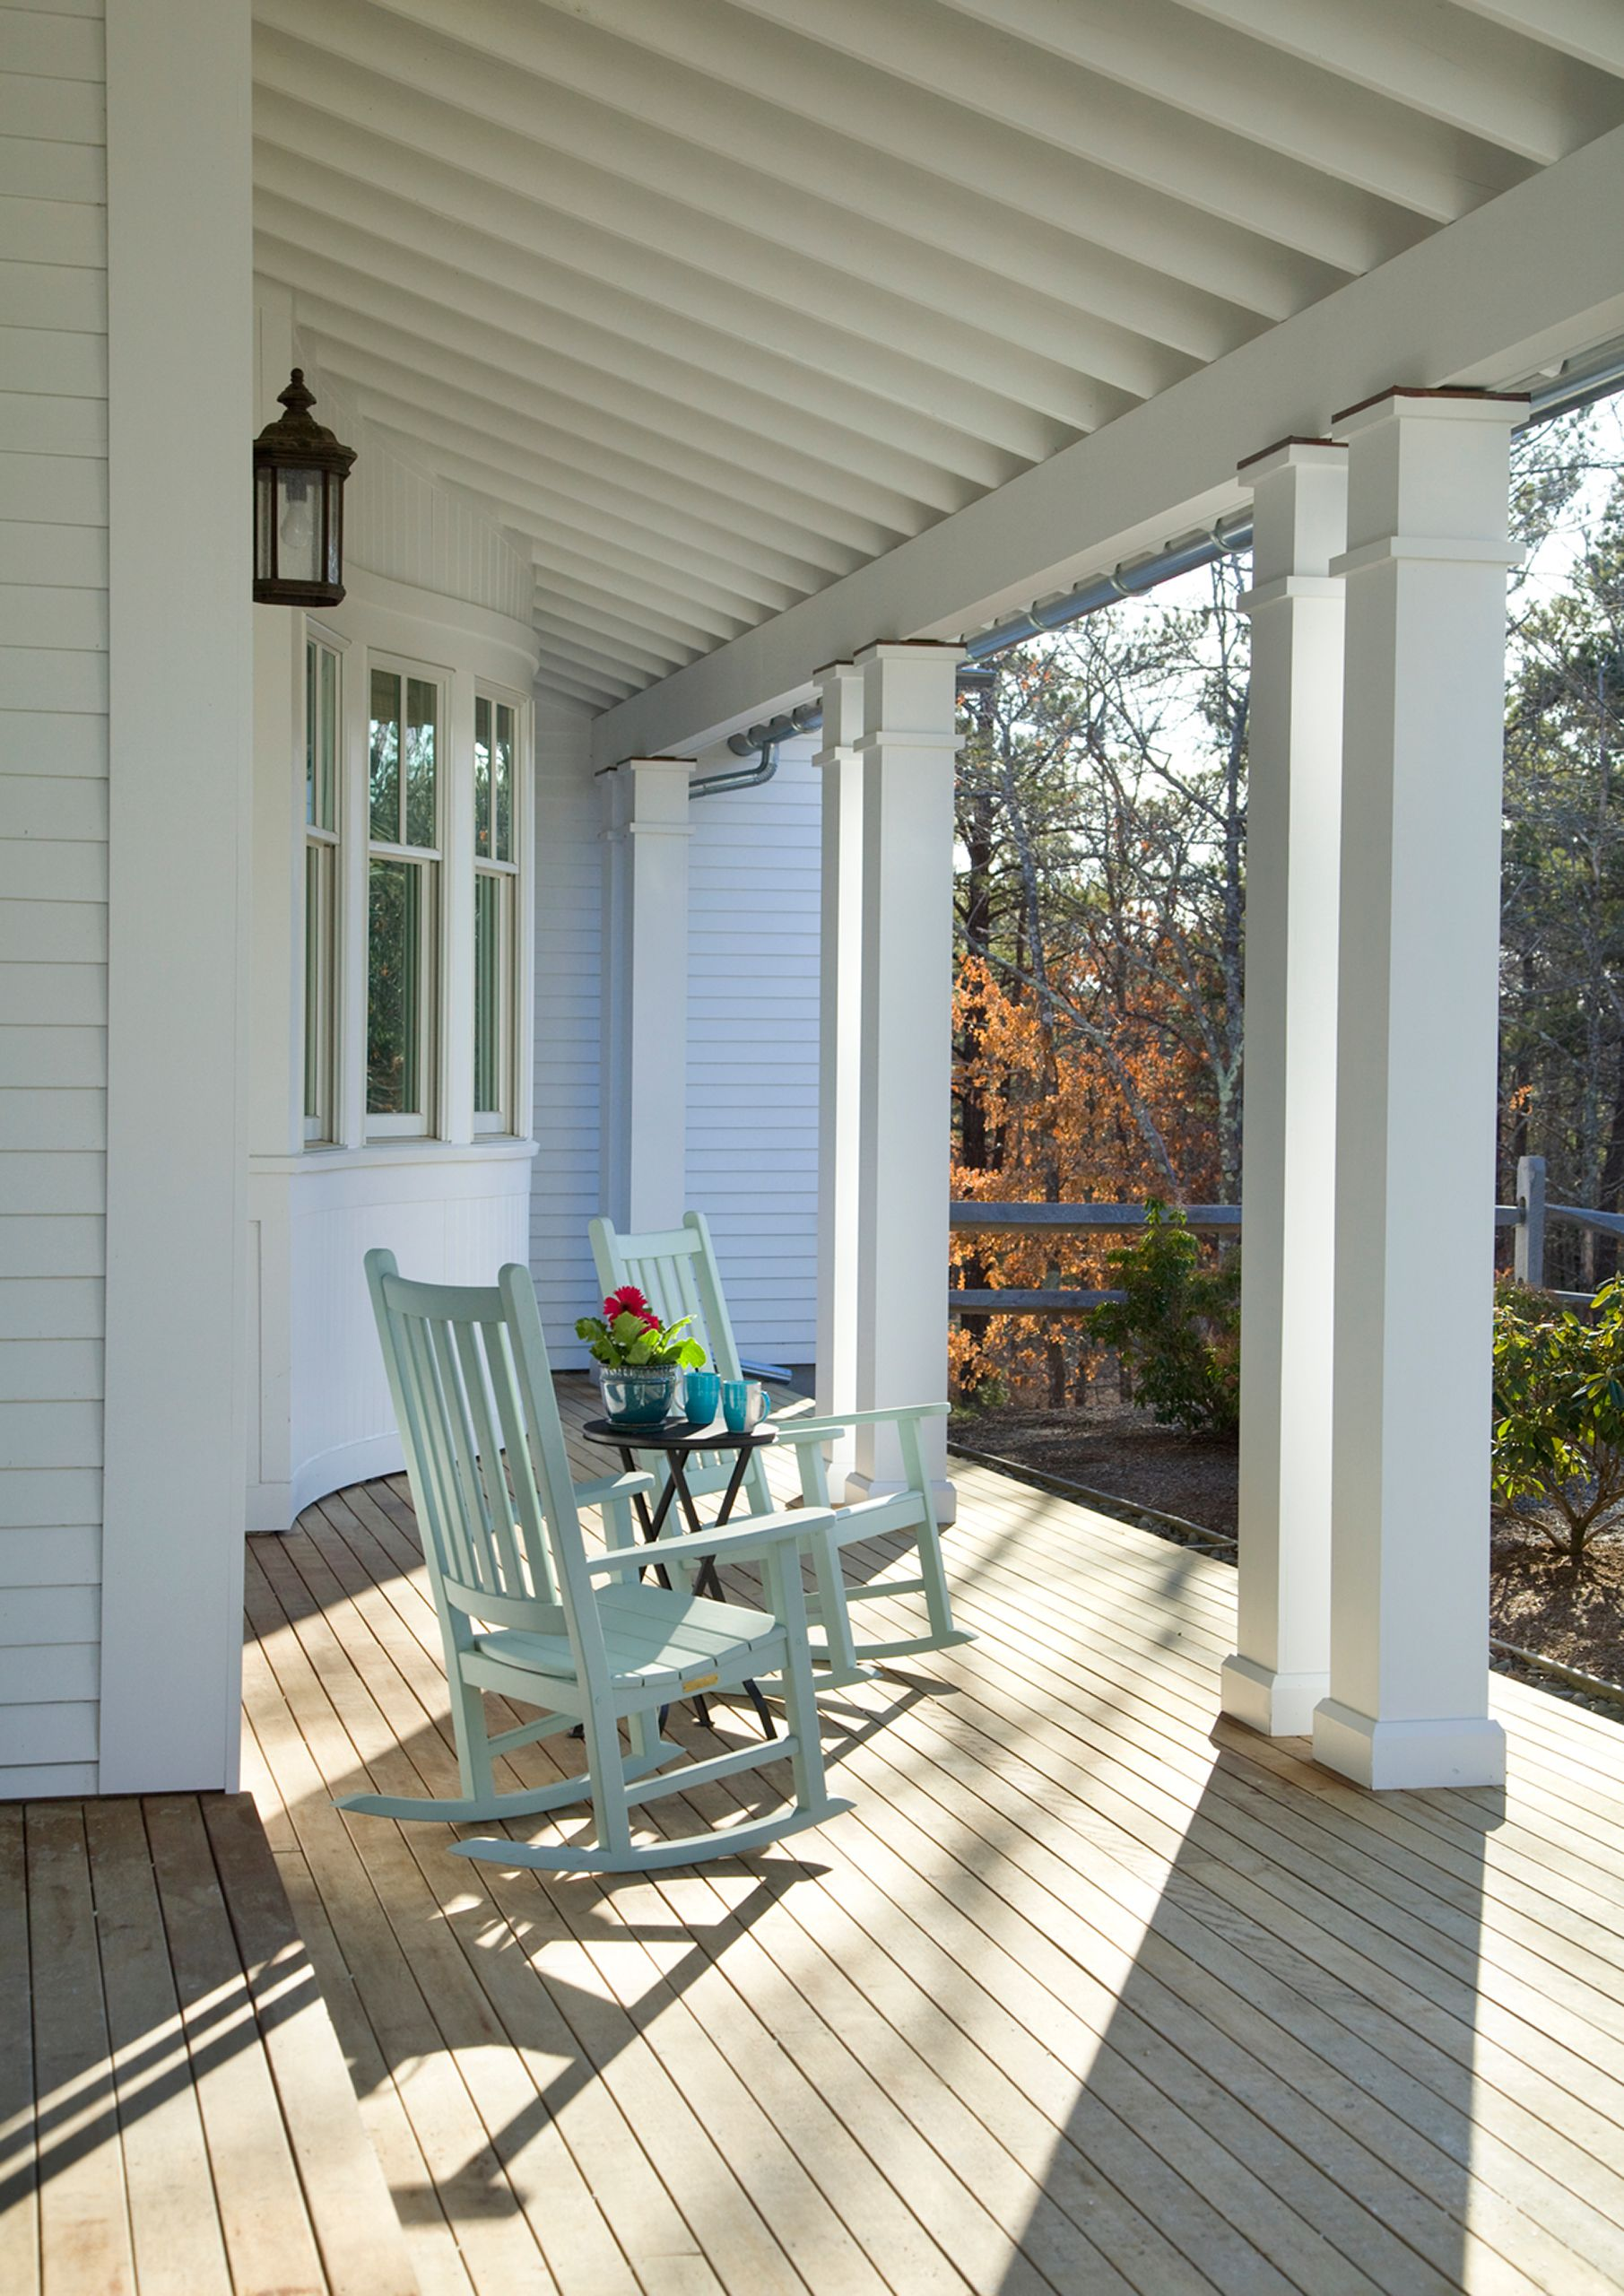 TalcottPines-ThePineHills-PlymouthMA-Porch.jpg